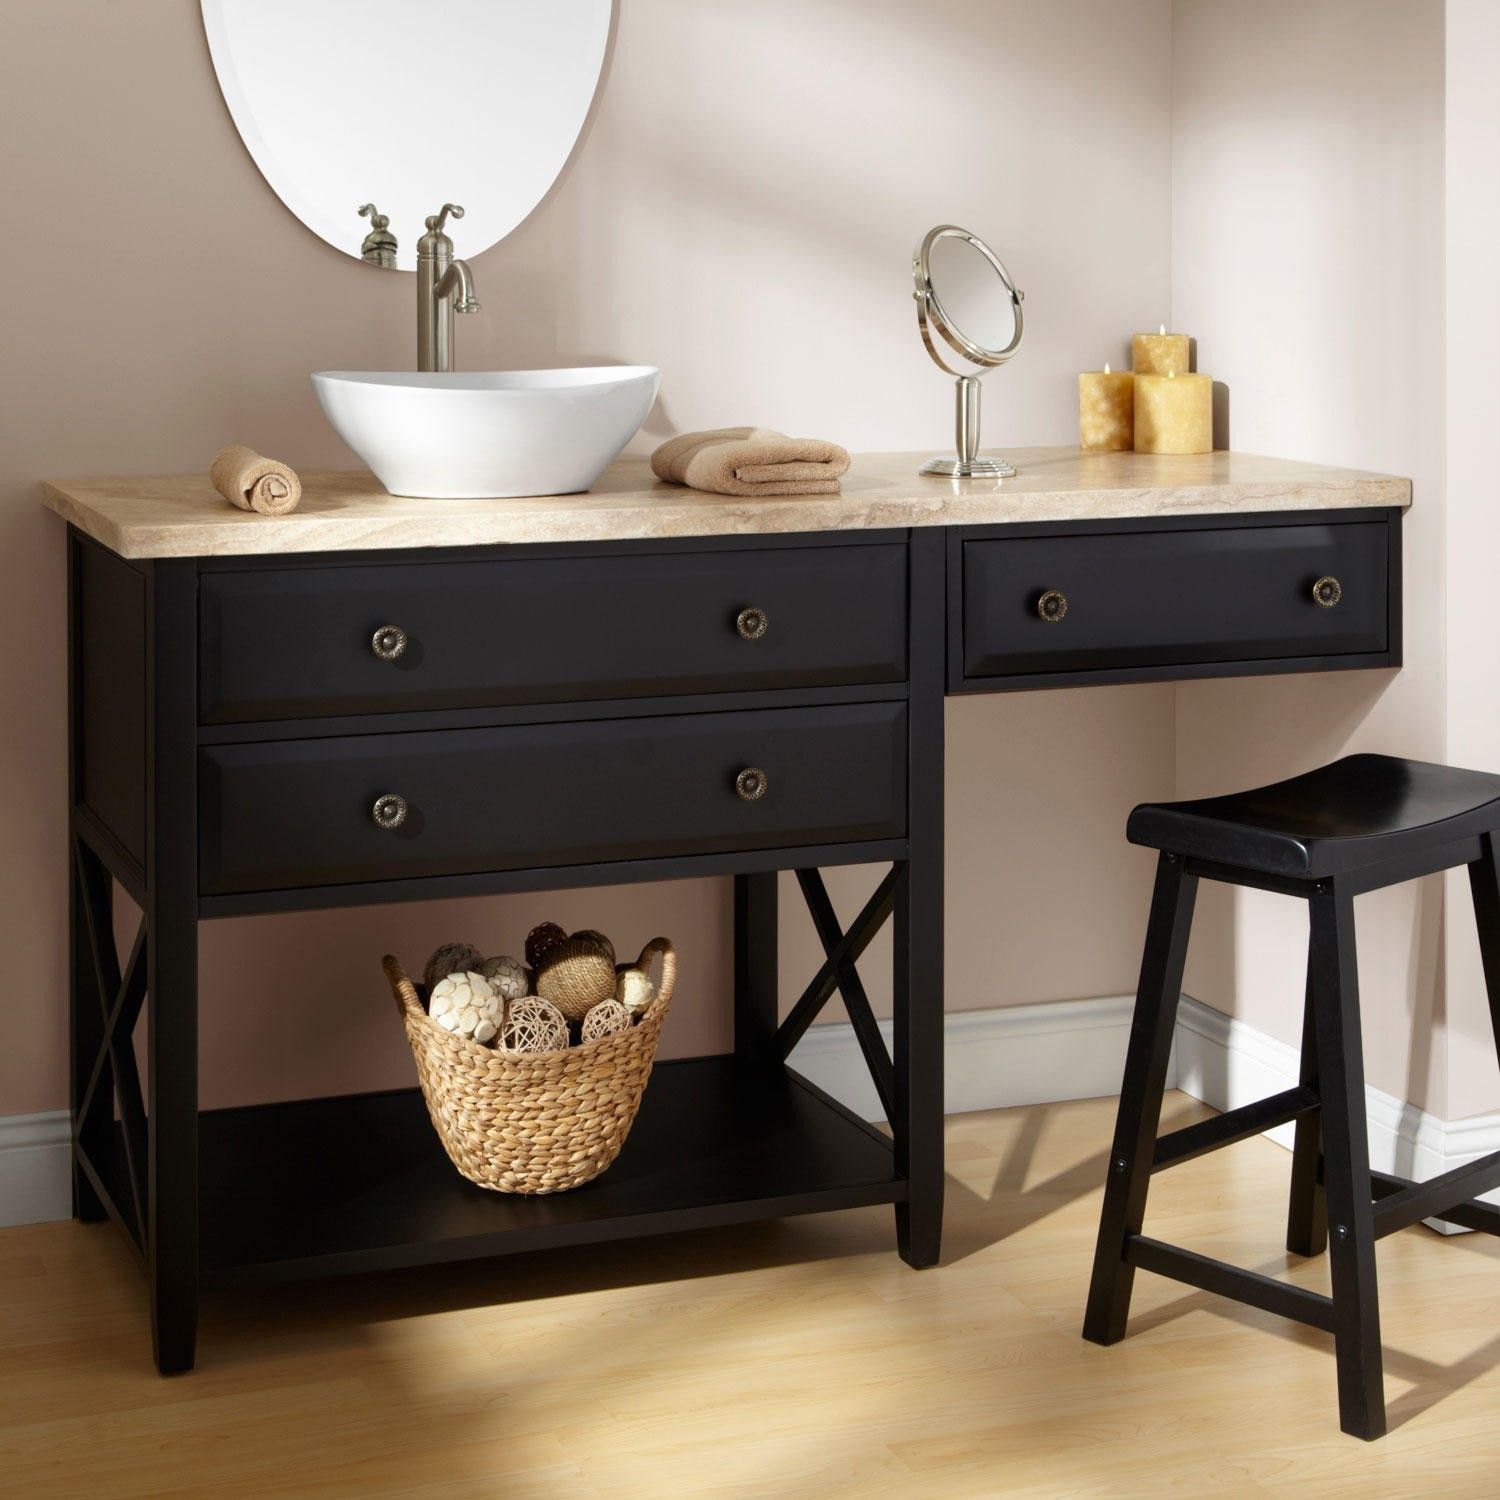 Makeup vanity for bathroom - Bathroom Vanity With Makeup Area 60 Clinton Black Vanity For Vessel Sink With Makeup